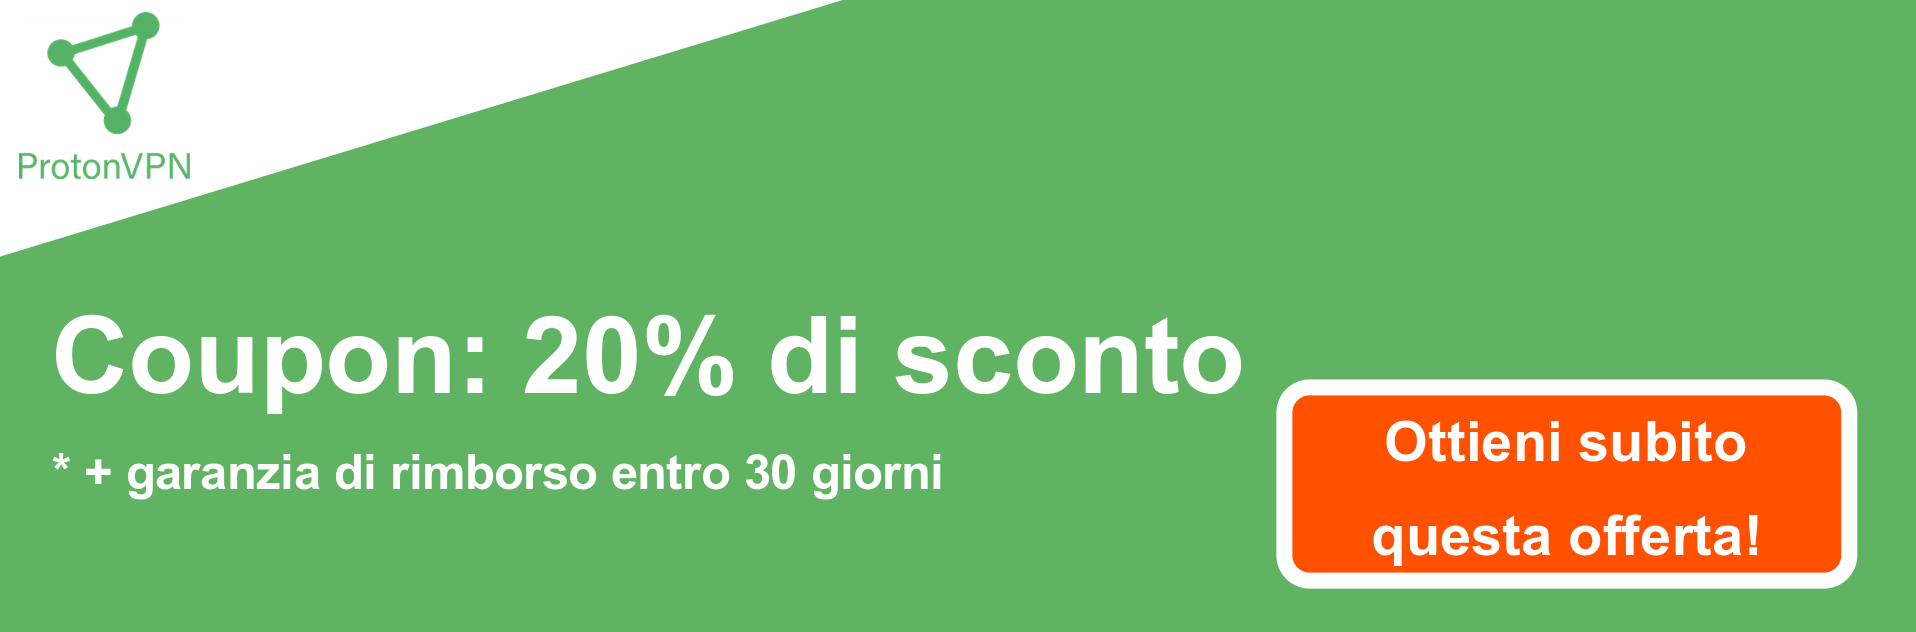 Banner coupon ProtonVPN - 20% di sconto